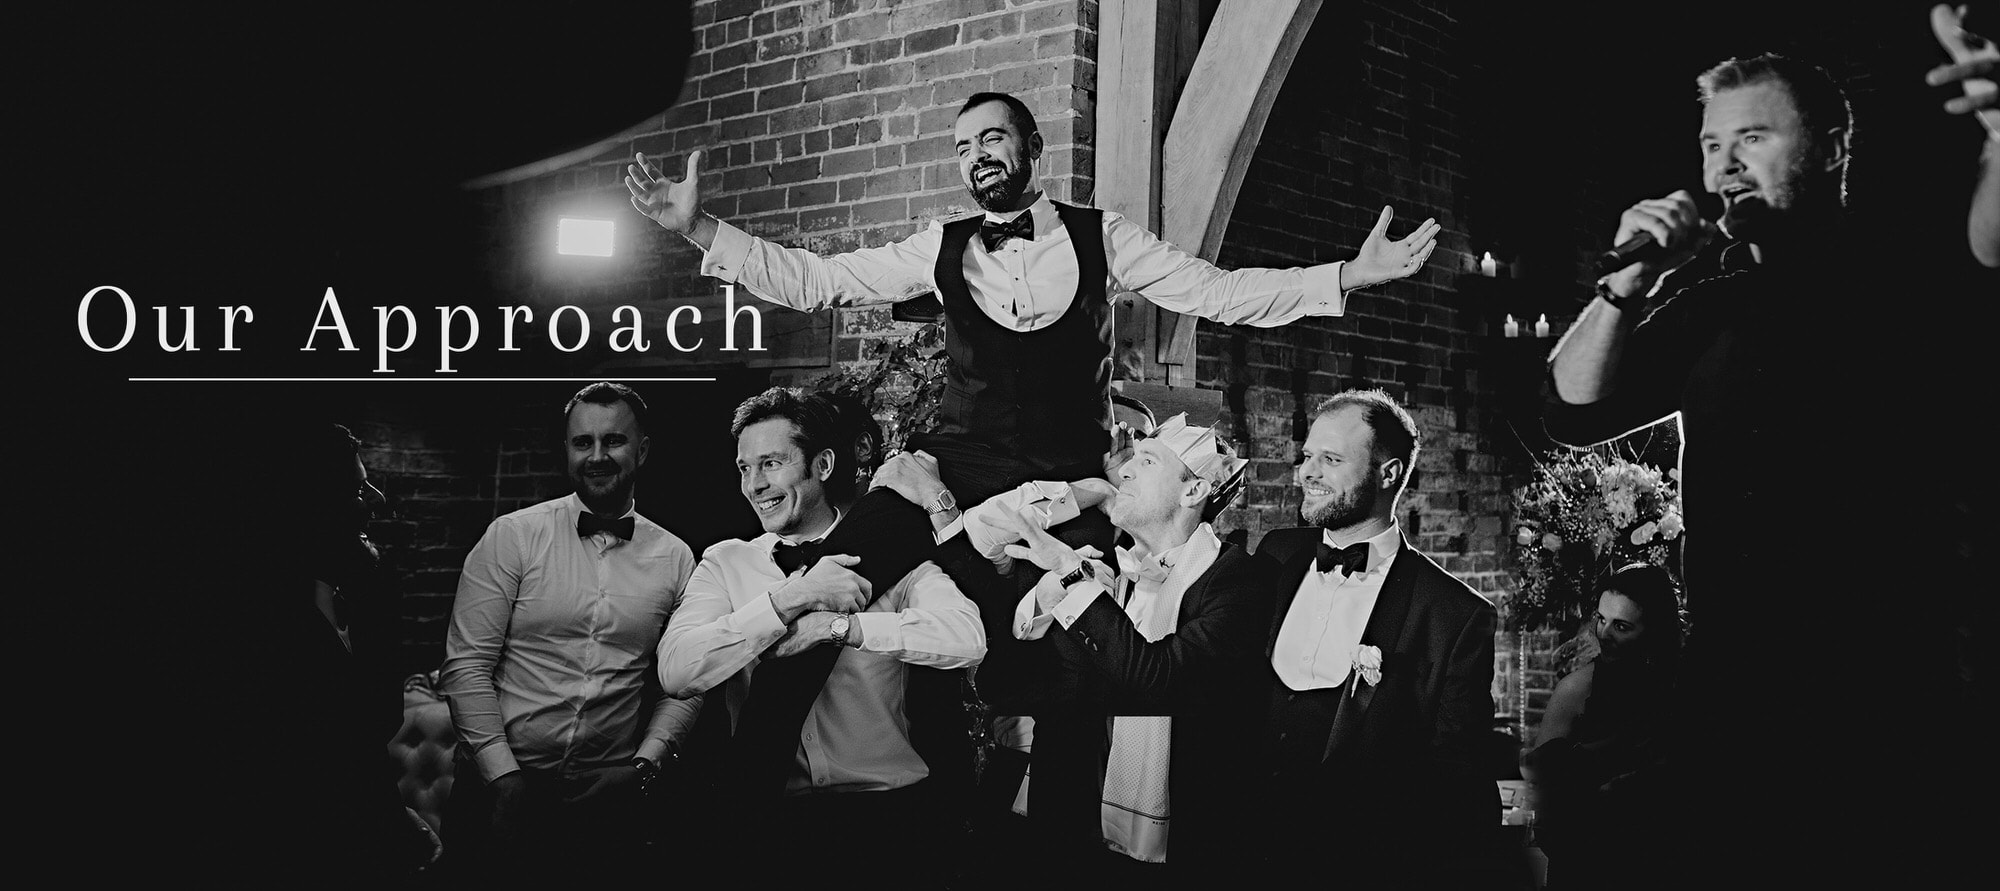 groom being liften into the air by his best men